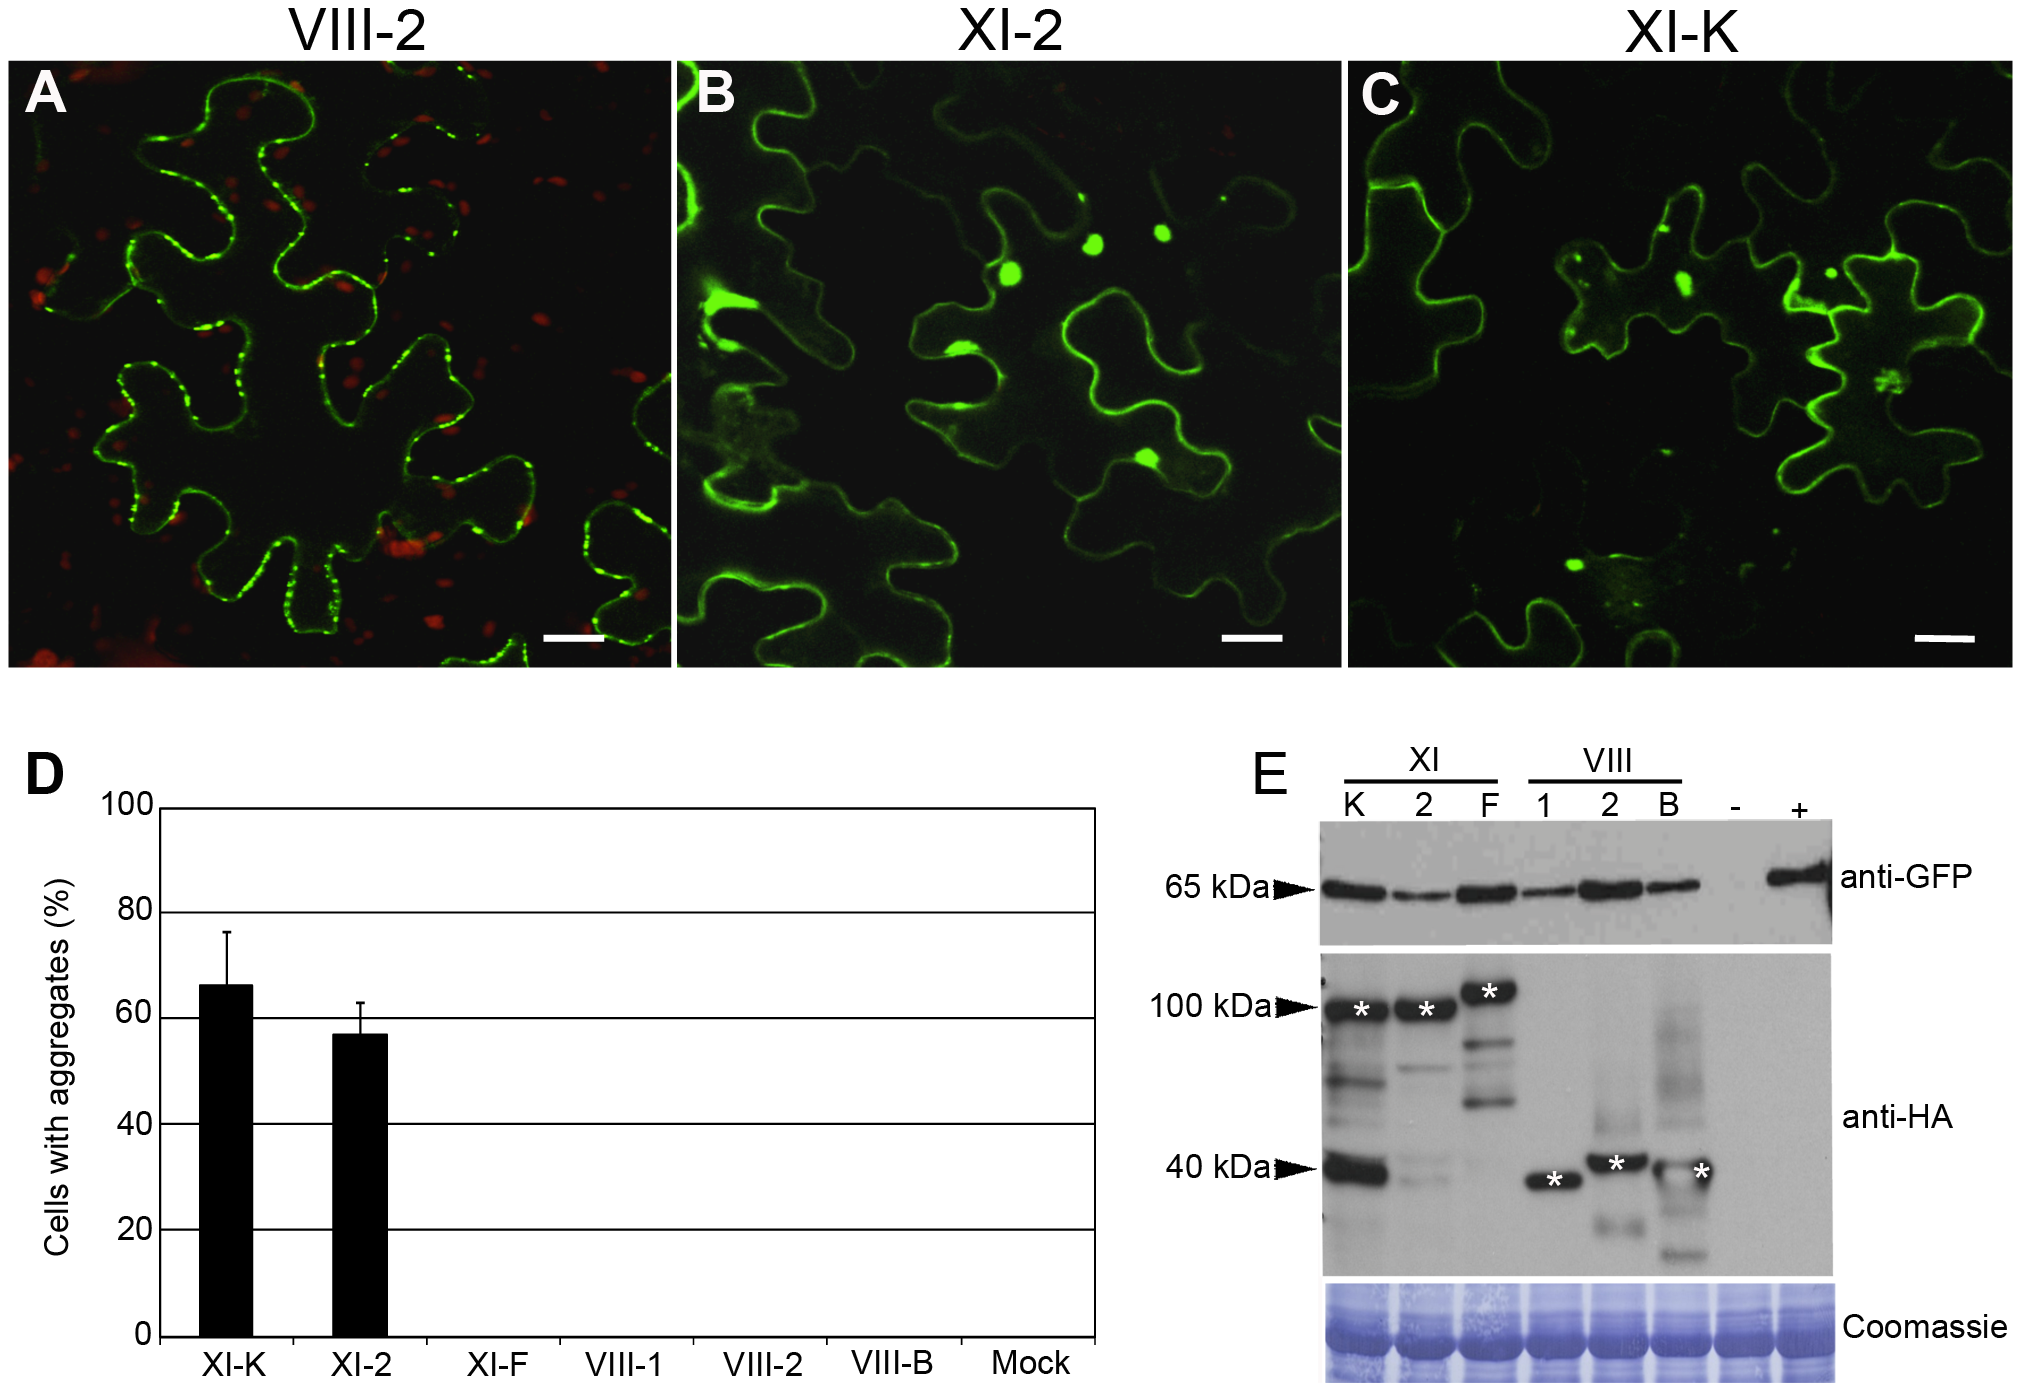 Transient co-expression of PDLP1:GFP and myosin XI-K or XI-2 tails leads to the PDLP1:GFP mislocalization and aggregation.